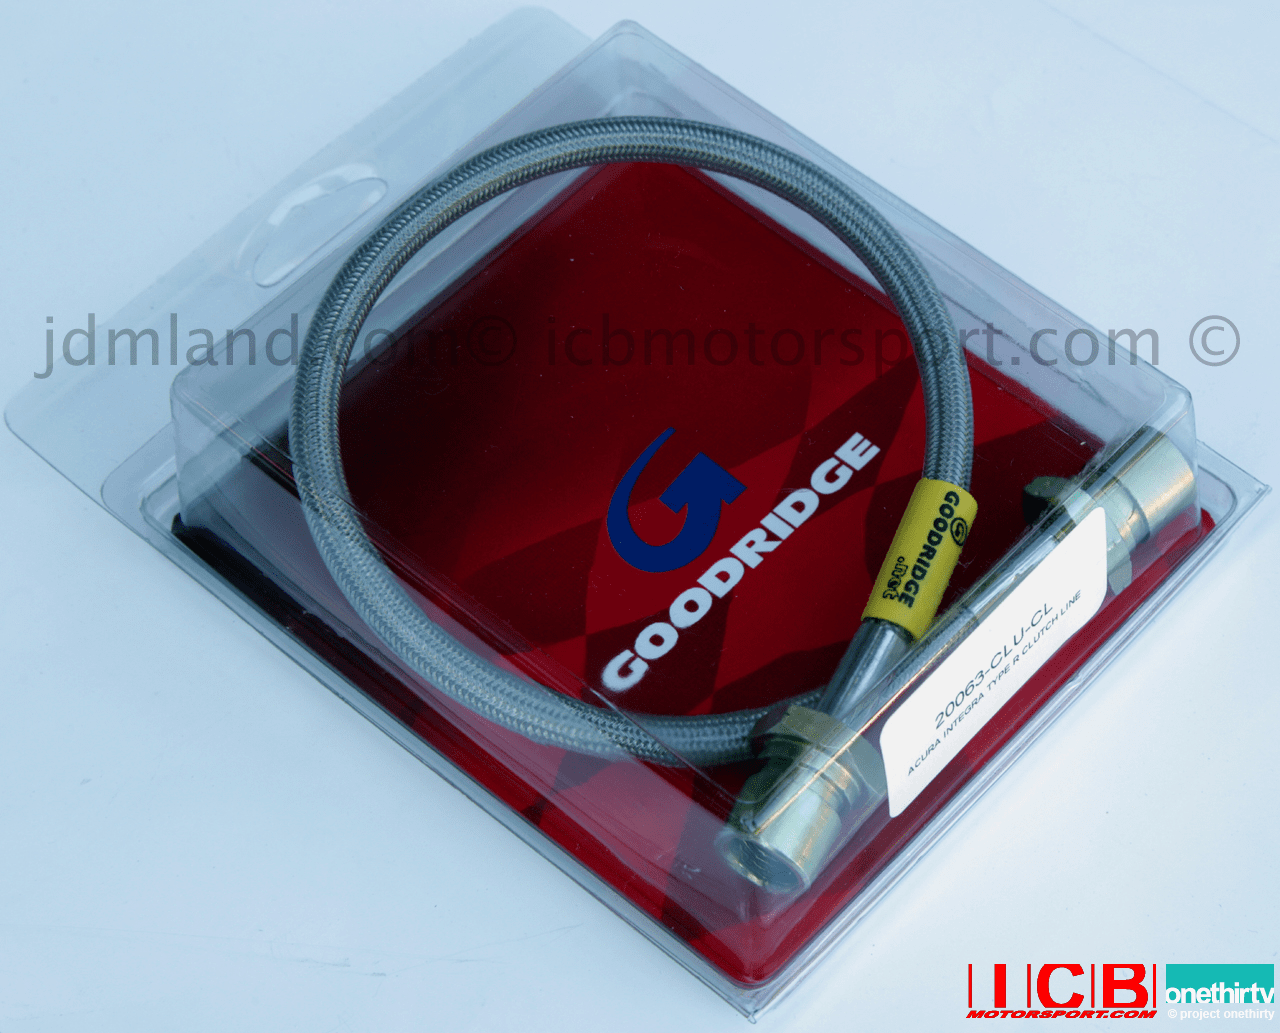 Goodridge Stainless Steel High Performance Clutch Line USDM Acura Integra 90-97 All RS LS GS GS-R 20062-CLU